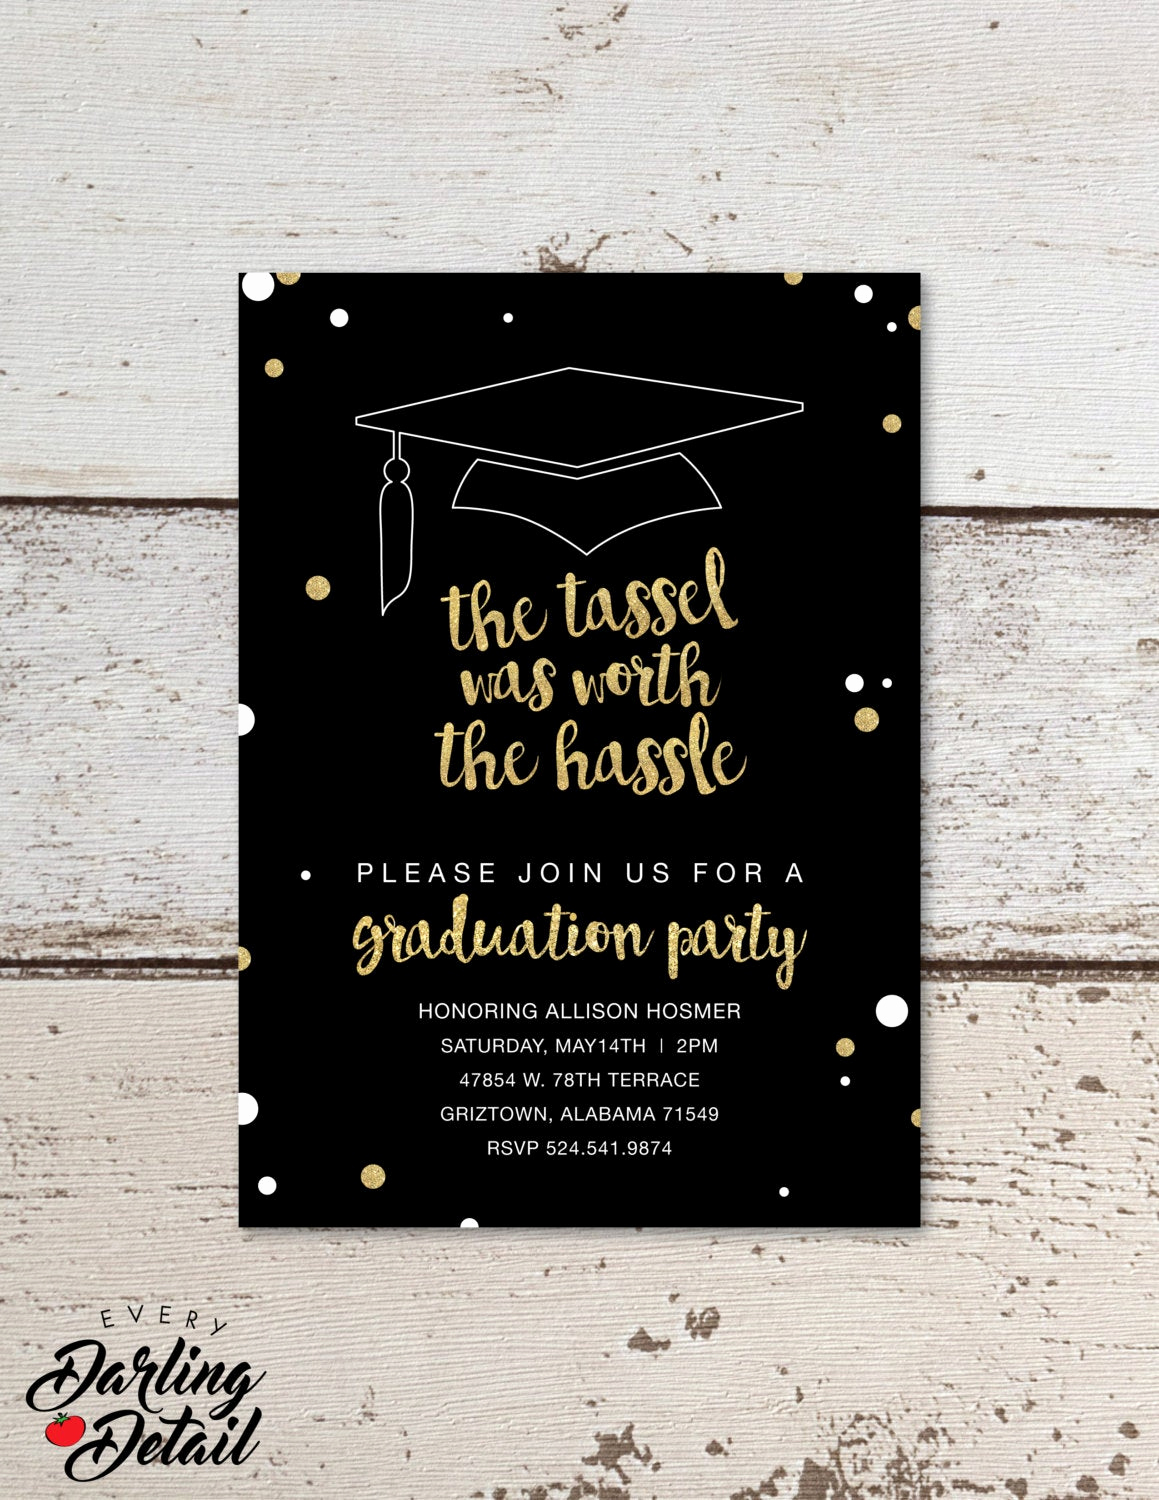 Graduation Party Invitation Text New the Tassel Was Worth the Hassle Graduation Party Invitation